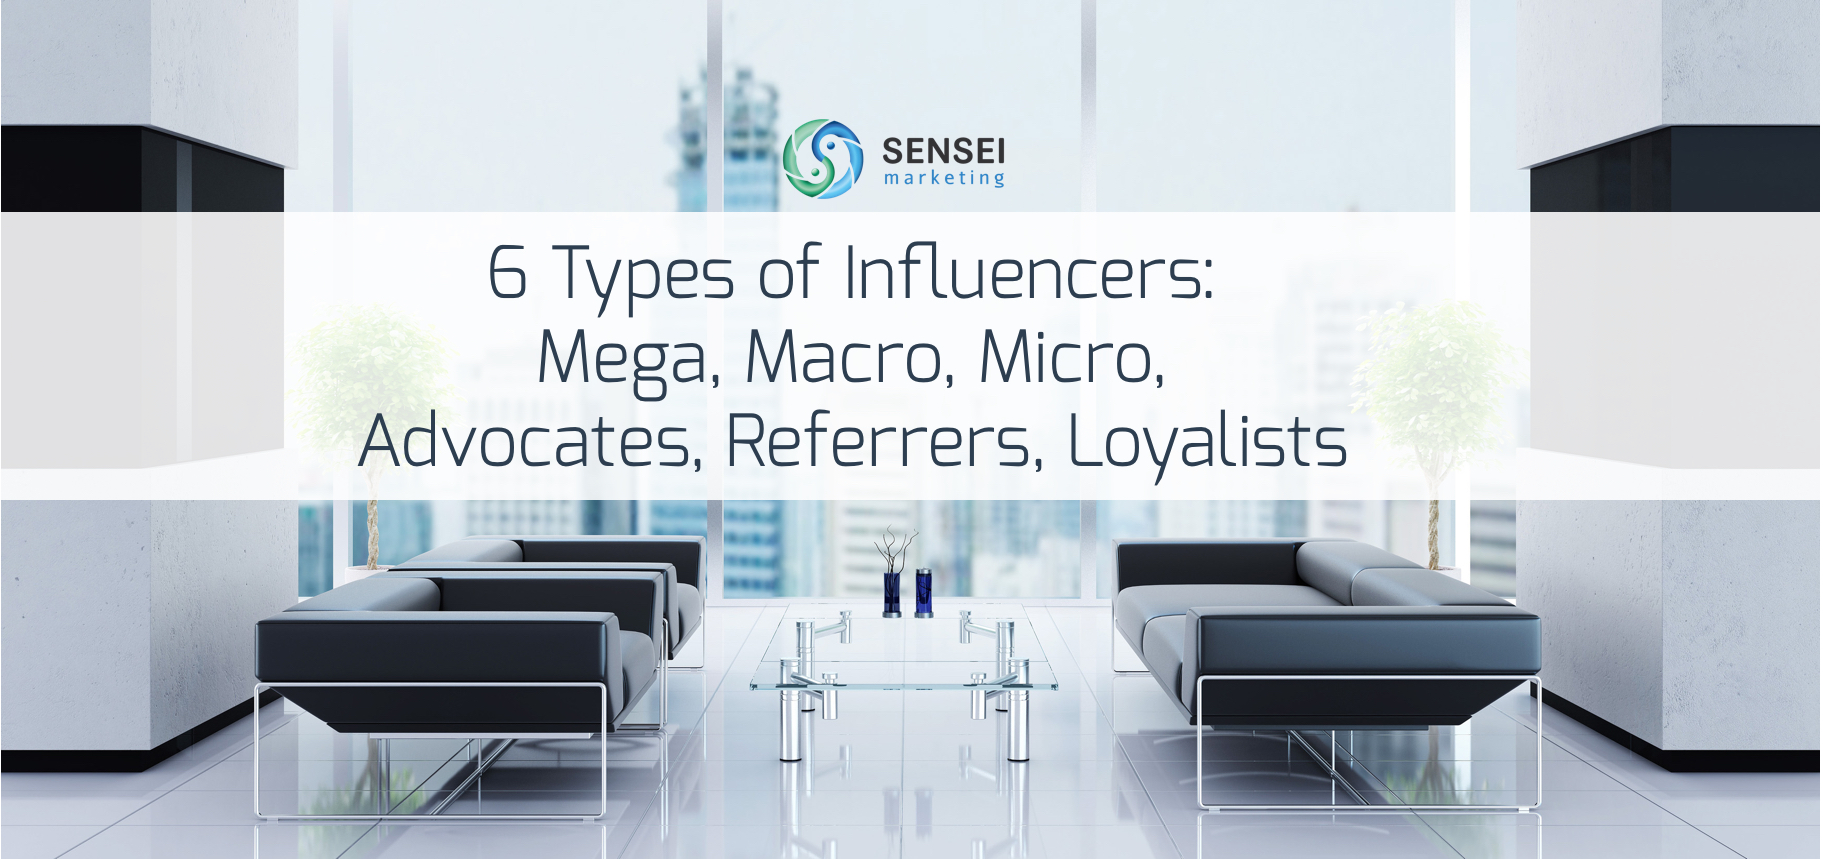 The 6 Types of Influencers and How To Identify and Work With